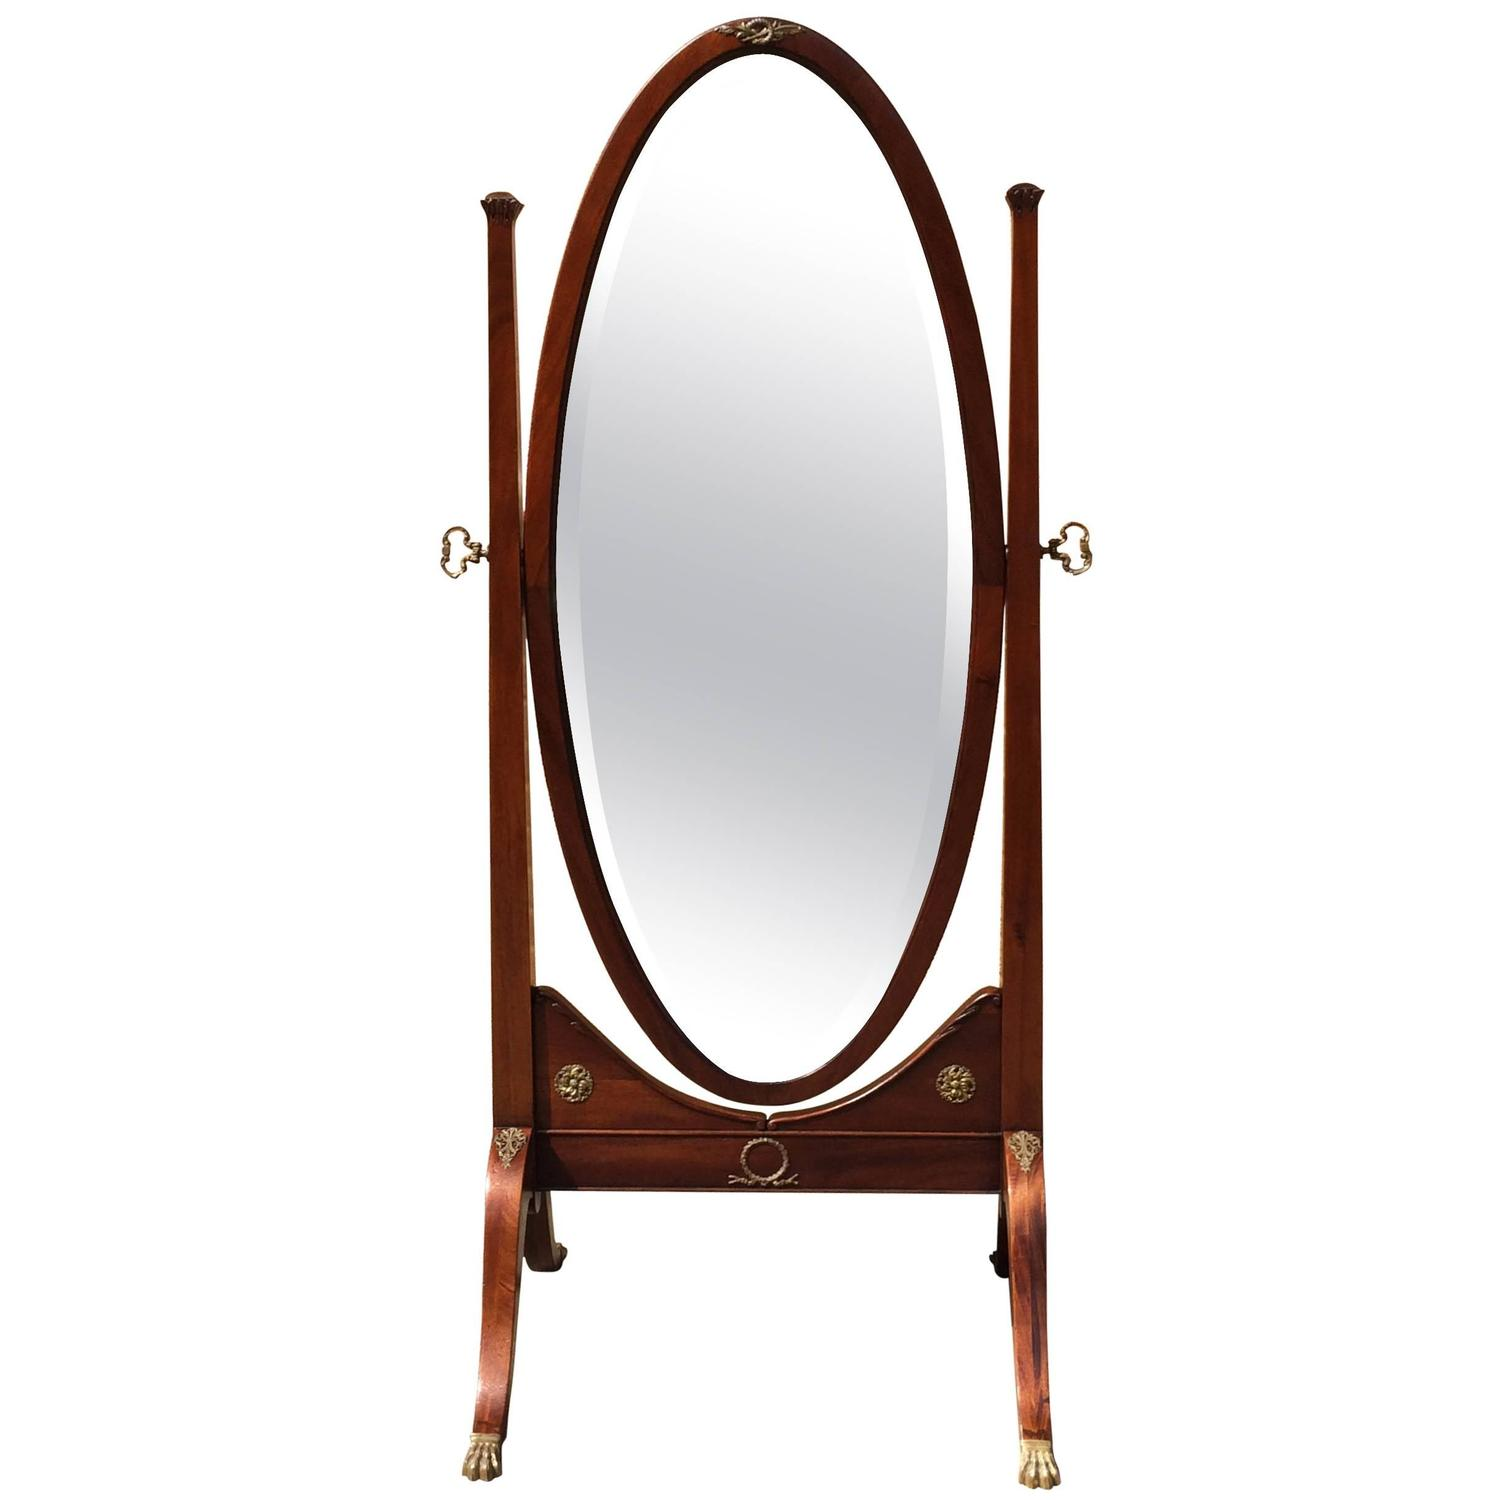 Mahogany cheval floor mirror